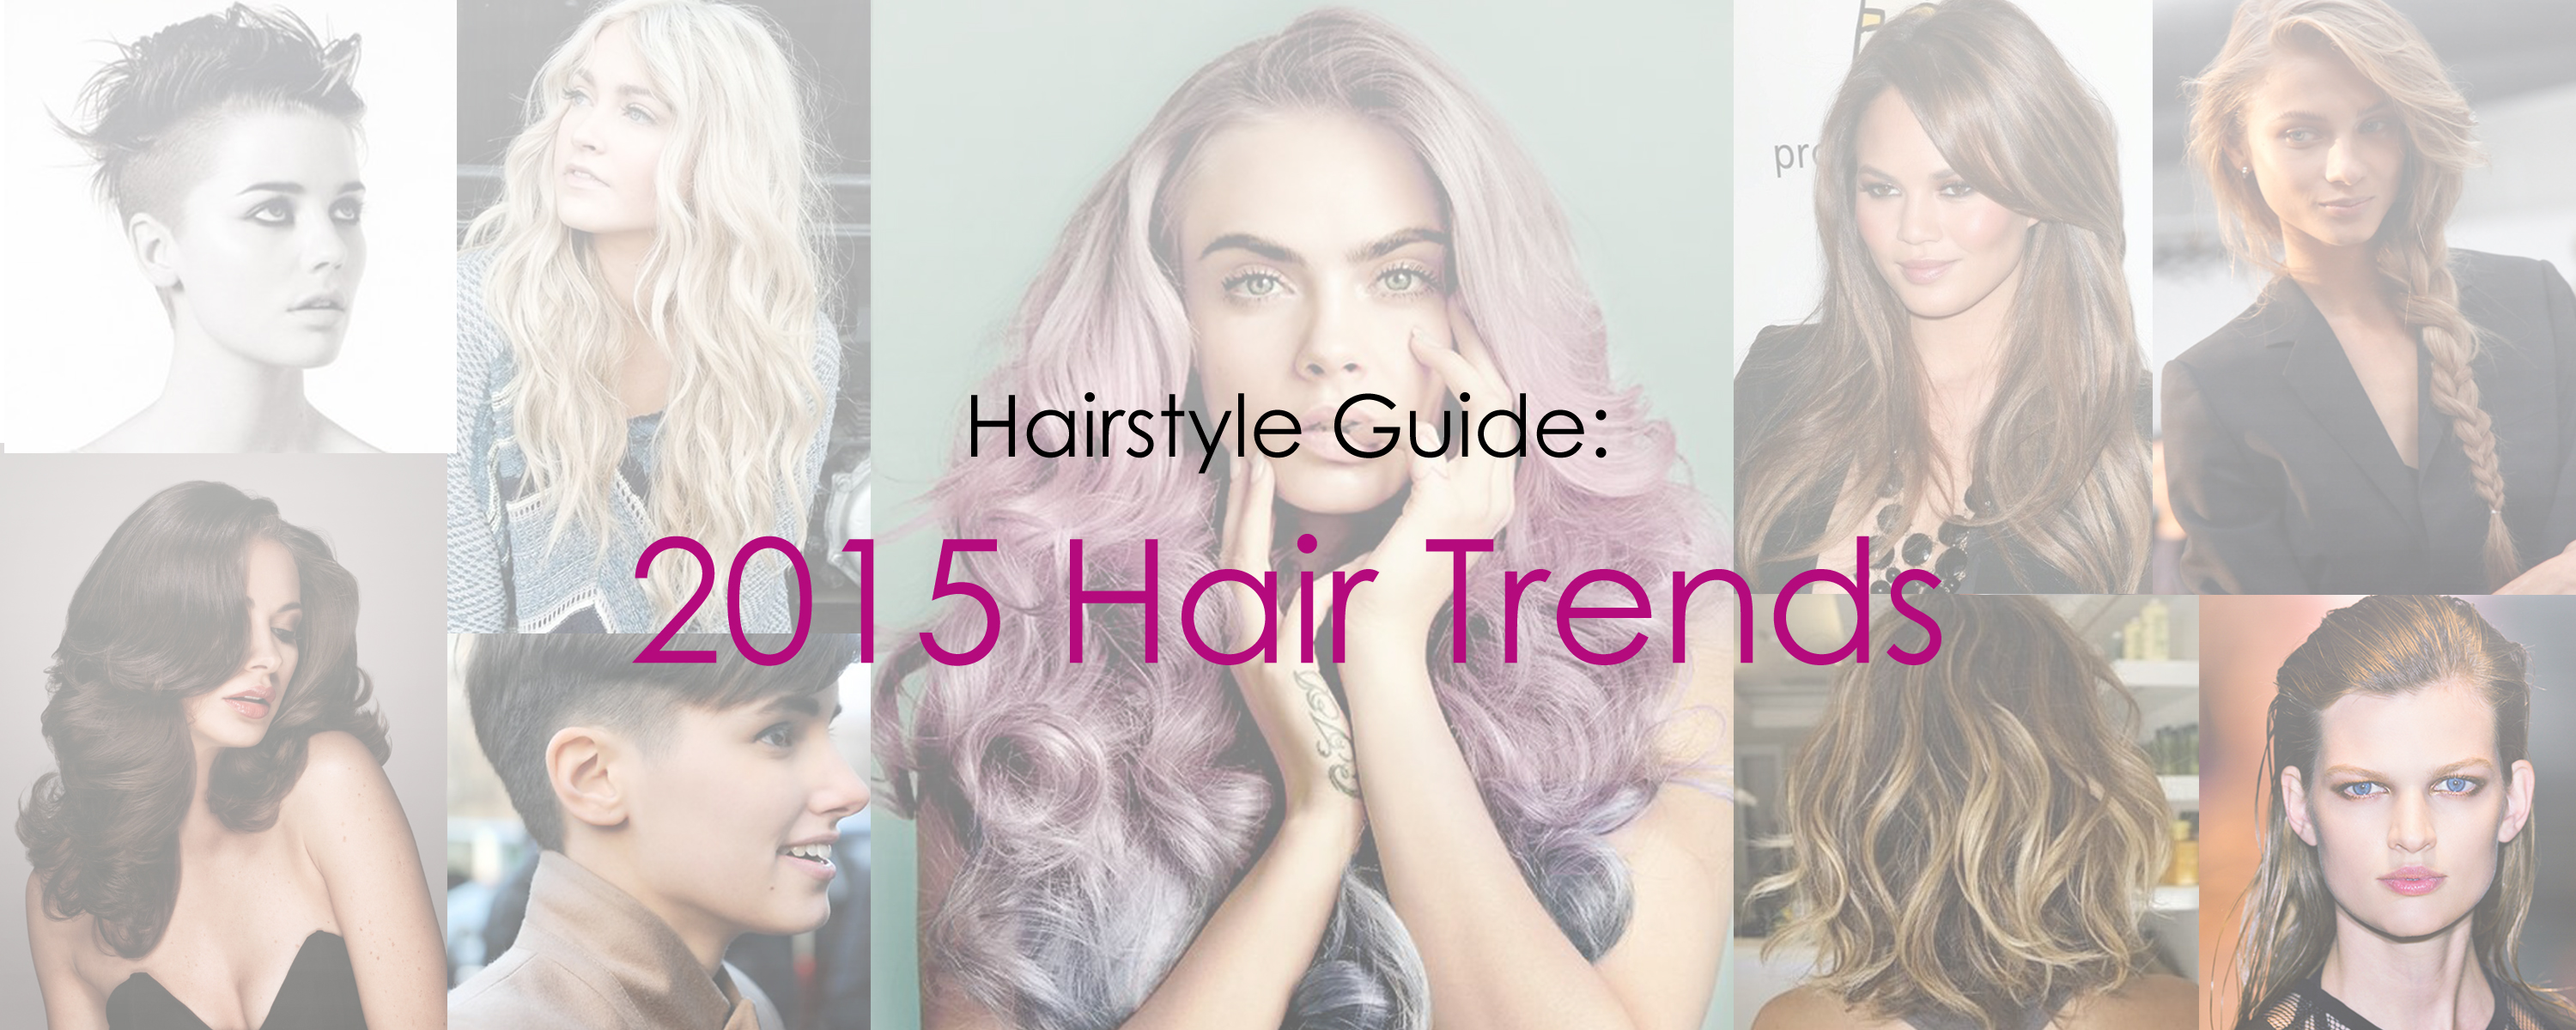 Hairstyle Guide: 2015 Hair Trends | Genesis Beauty